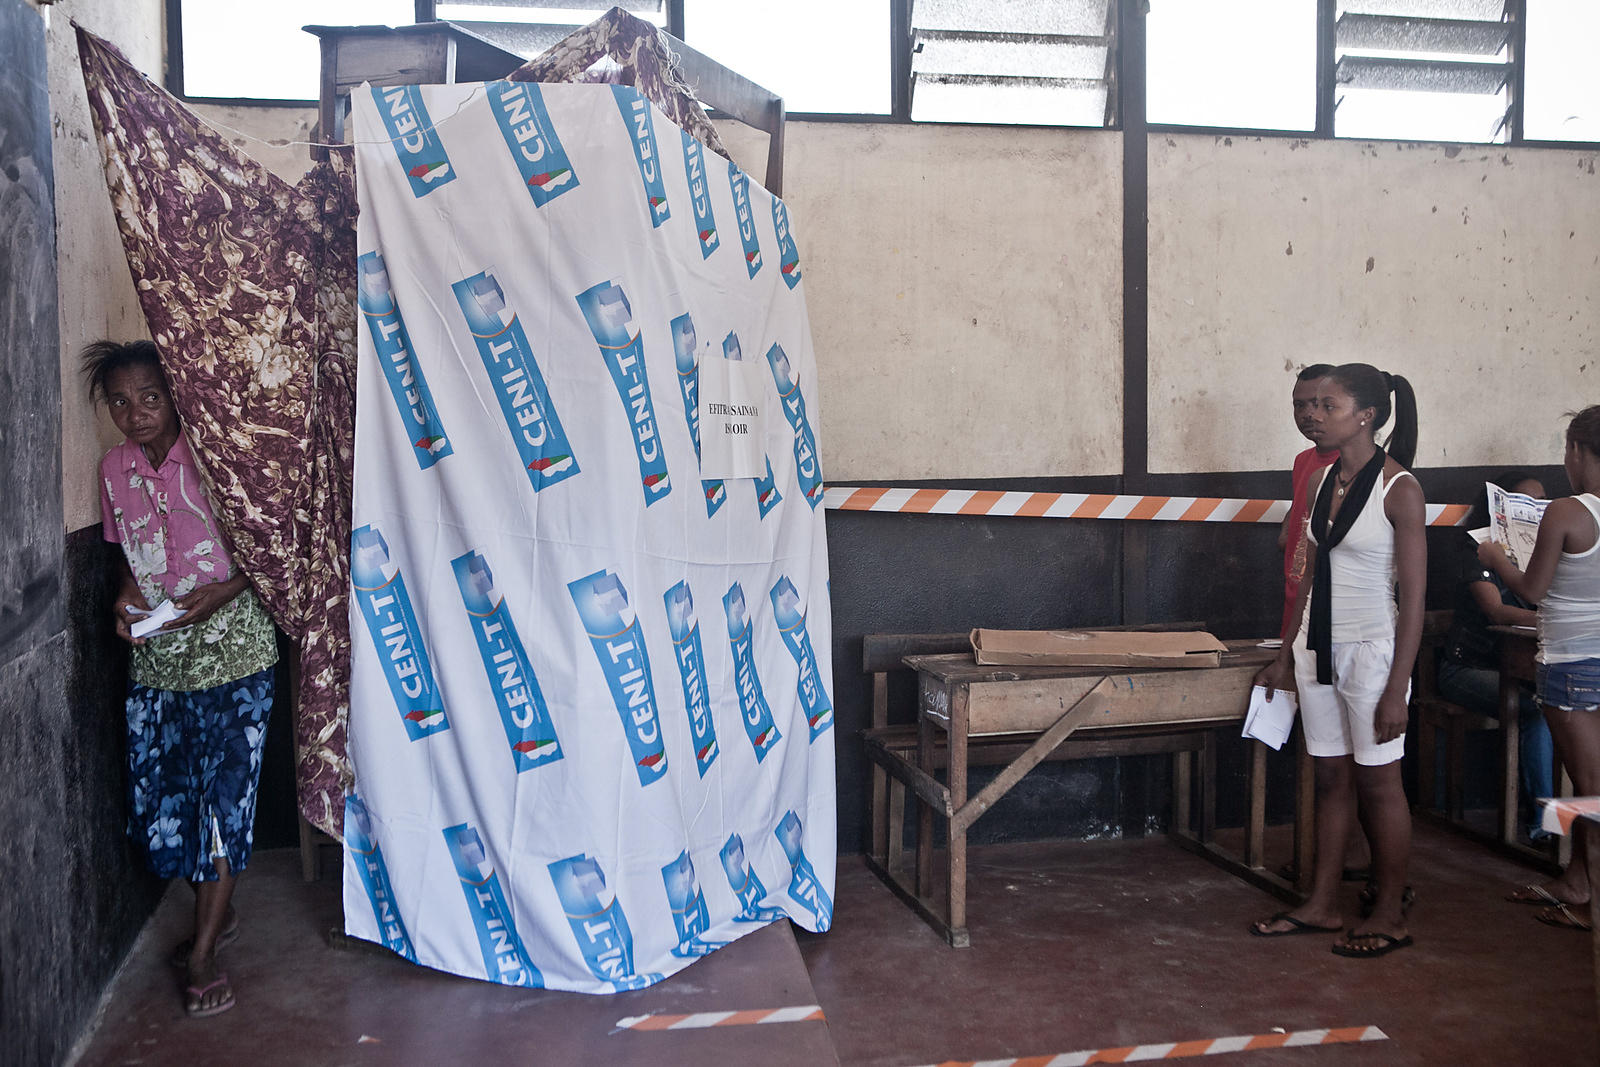 People prepare to vote at a polling station in Tamatave, on the eastern coast of Madagascar, on October 25, 2013. Madagascar ...